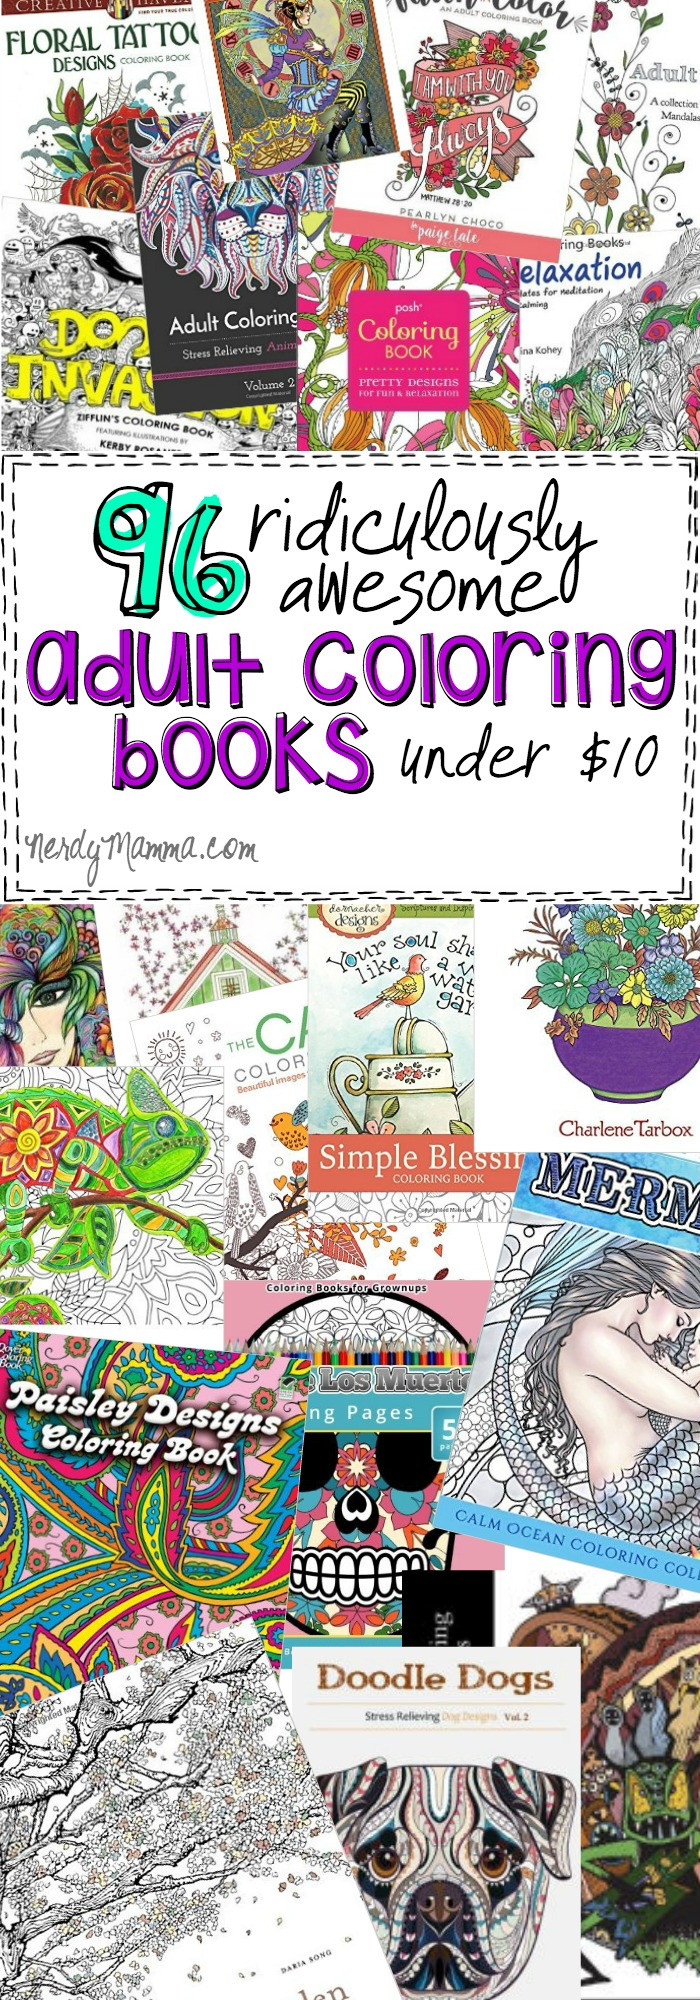 Best ideas about Cheap Adult Coloring Books . Save or Pin 96 Ridiculously Awesome Adult Coloring Books Under $10 Now.